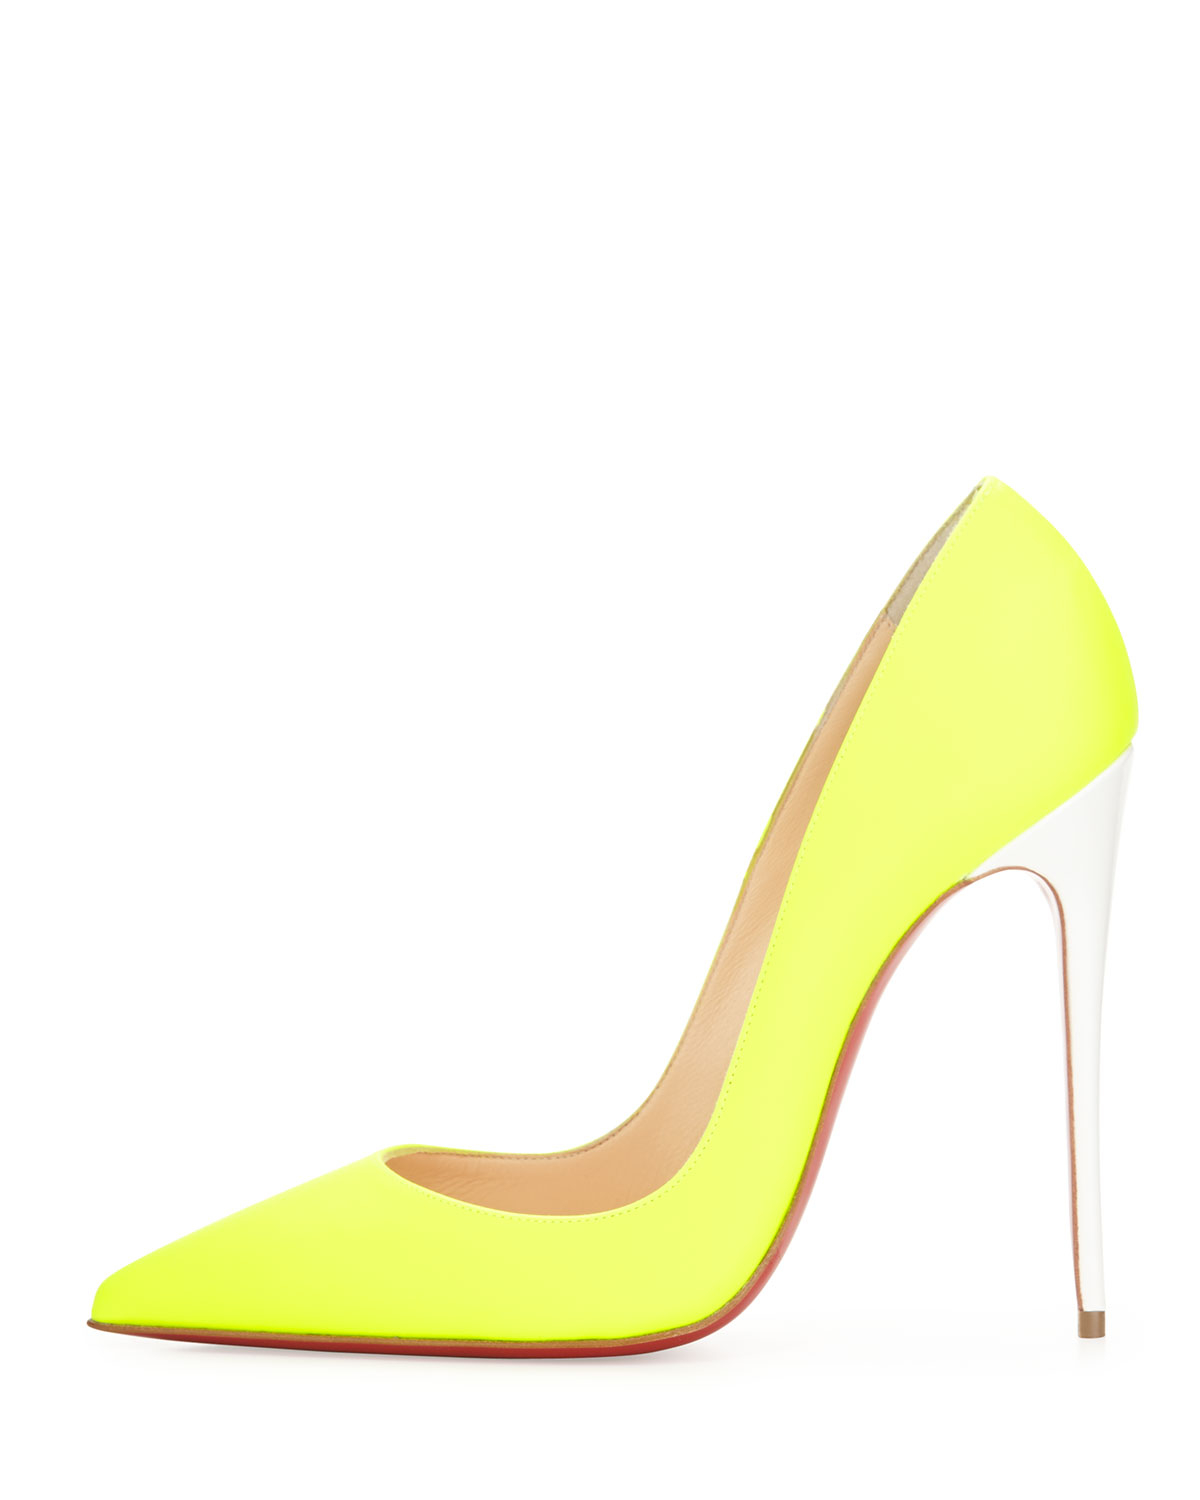 63824d015872 Christian louboutin So Kate Fluorescent Leather Heels in Yellow | Lyst